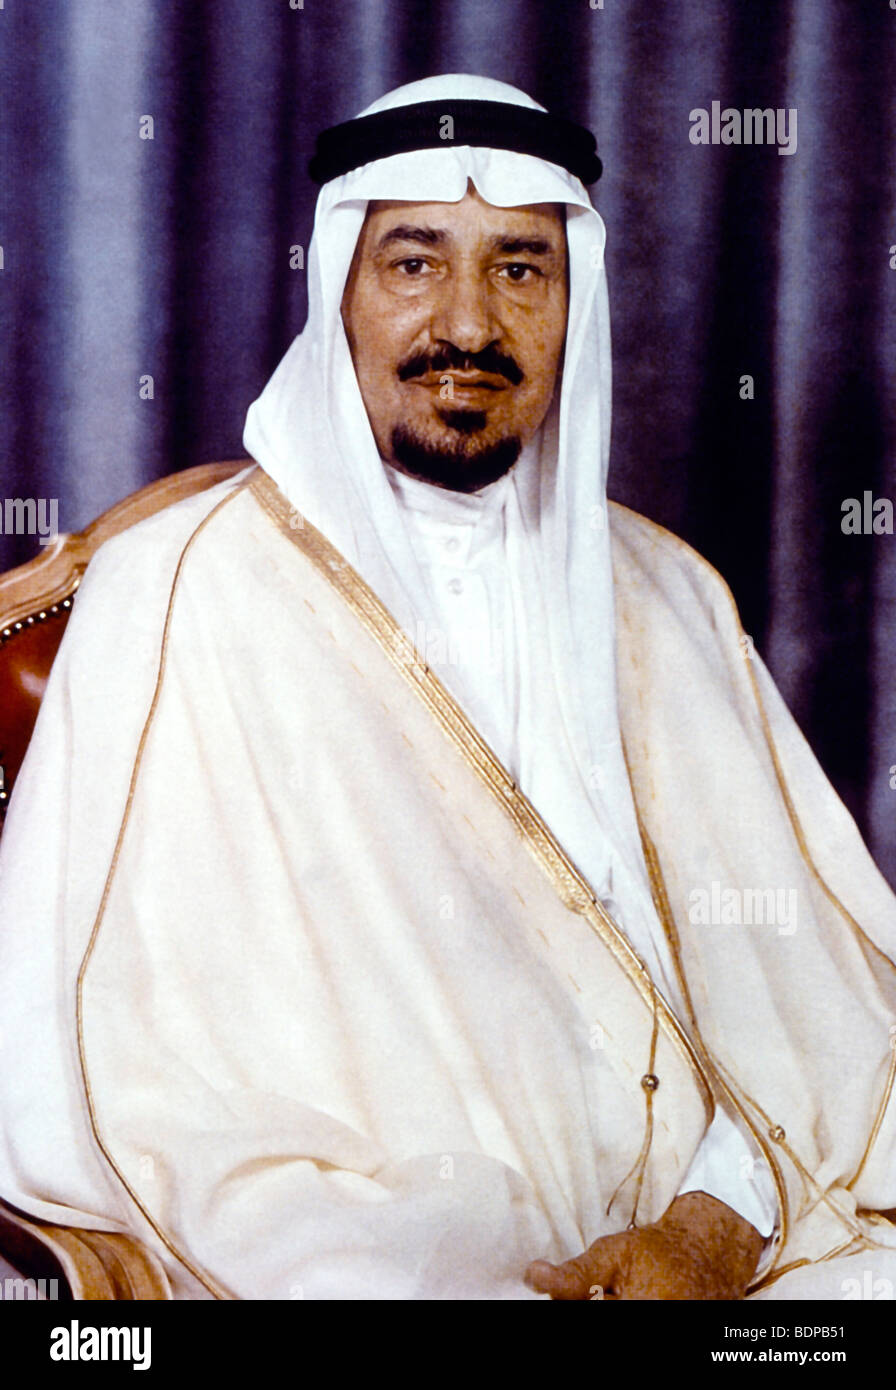 khaled stock photos khaled stock images alamy saudi arabia h m king khaled bin abdul aziz stock image